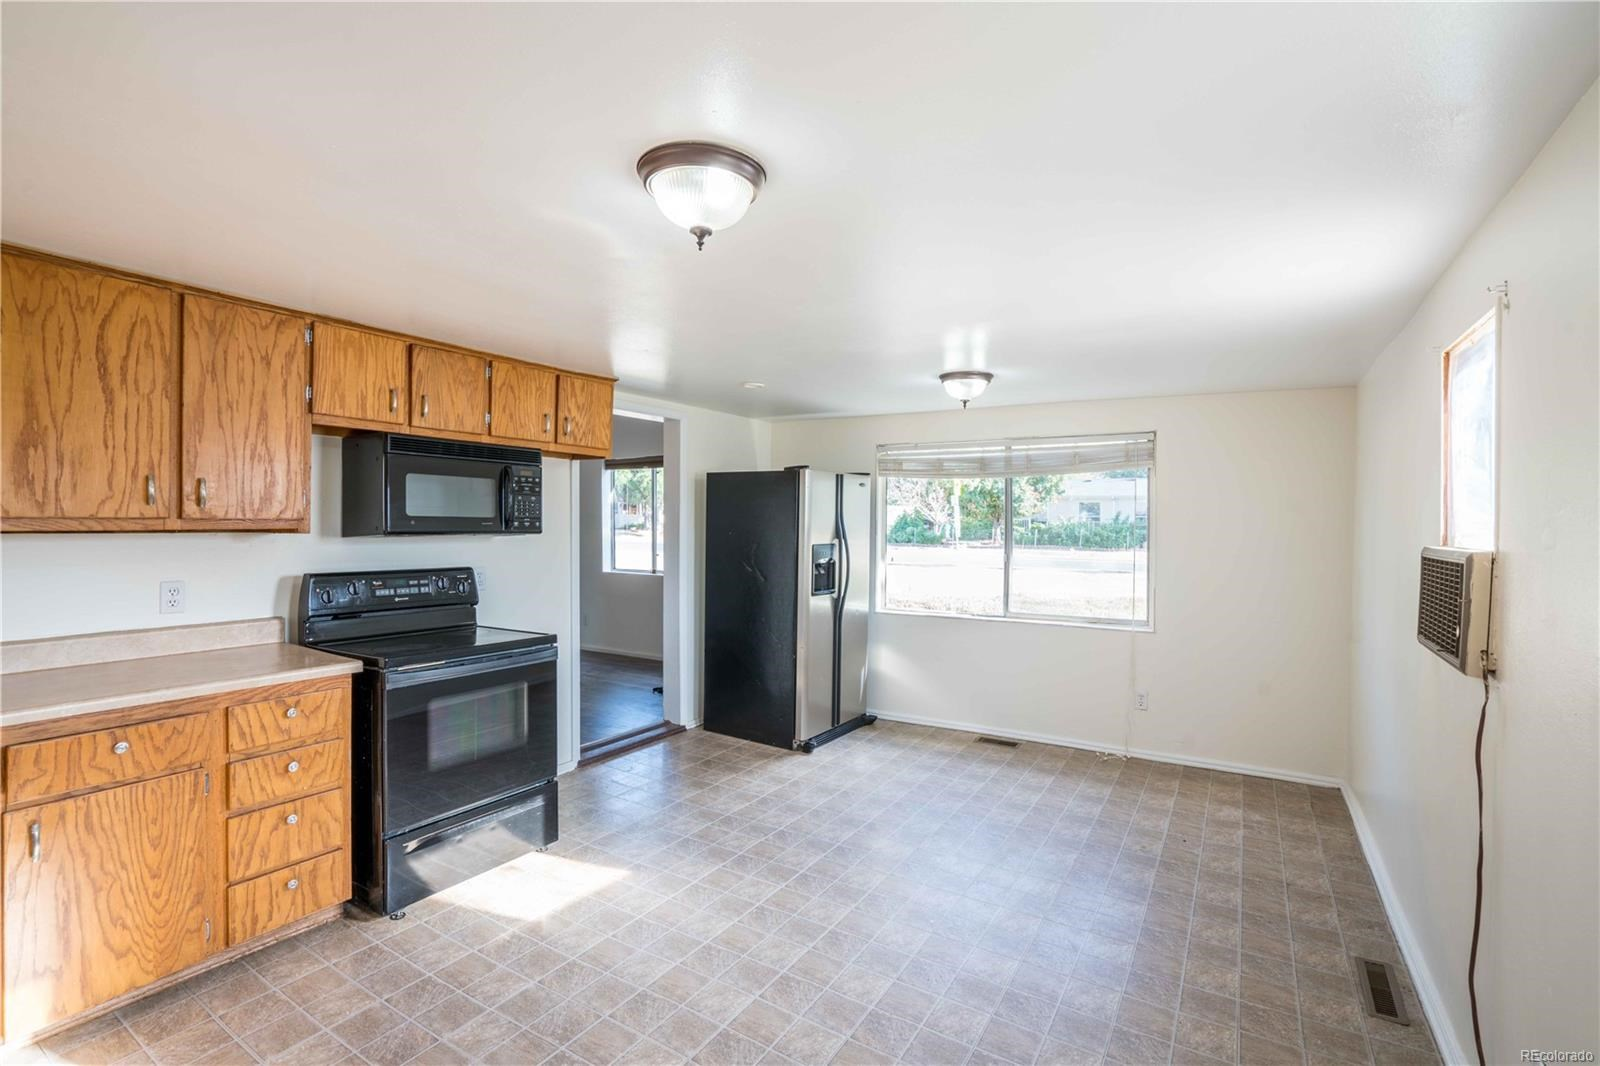 MLS# 8415576 - 6 - 851 Main Street, Hudson, CO 80642